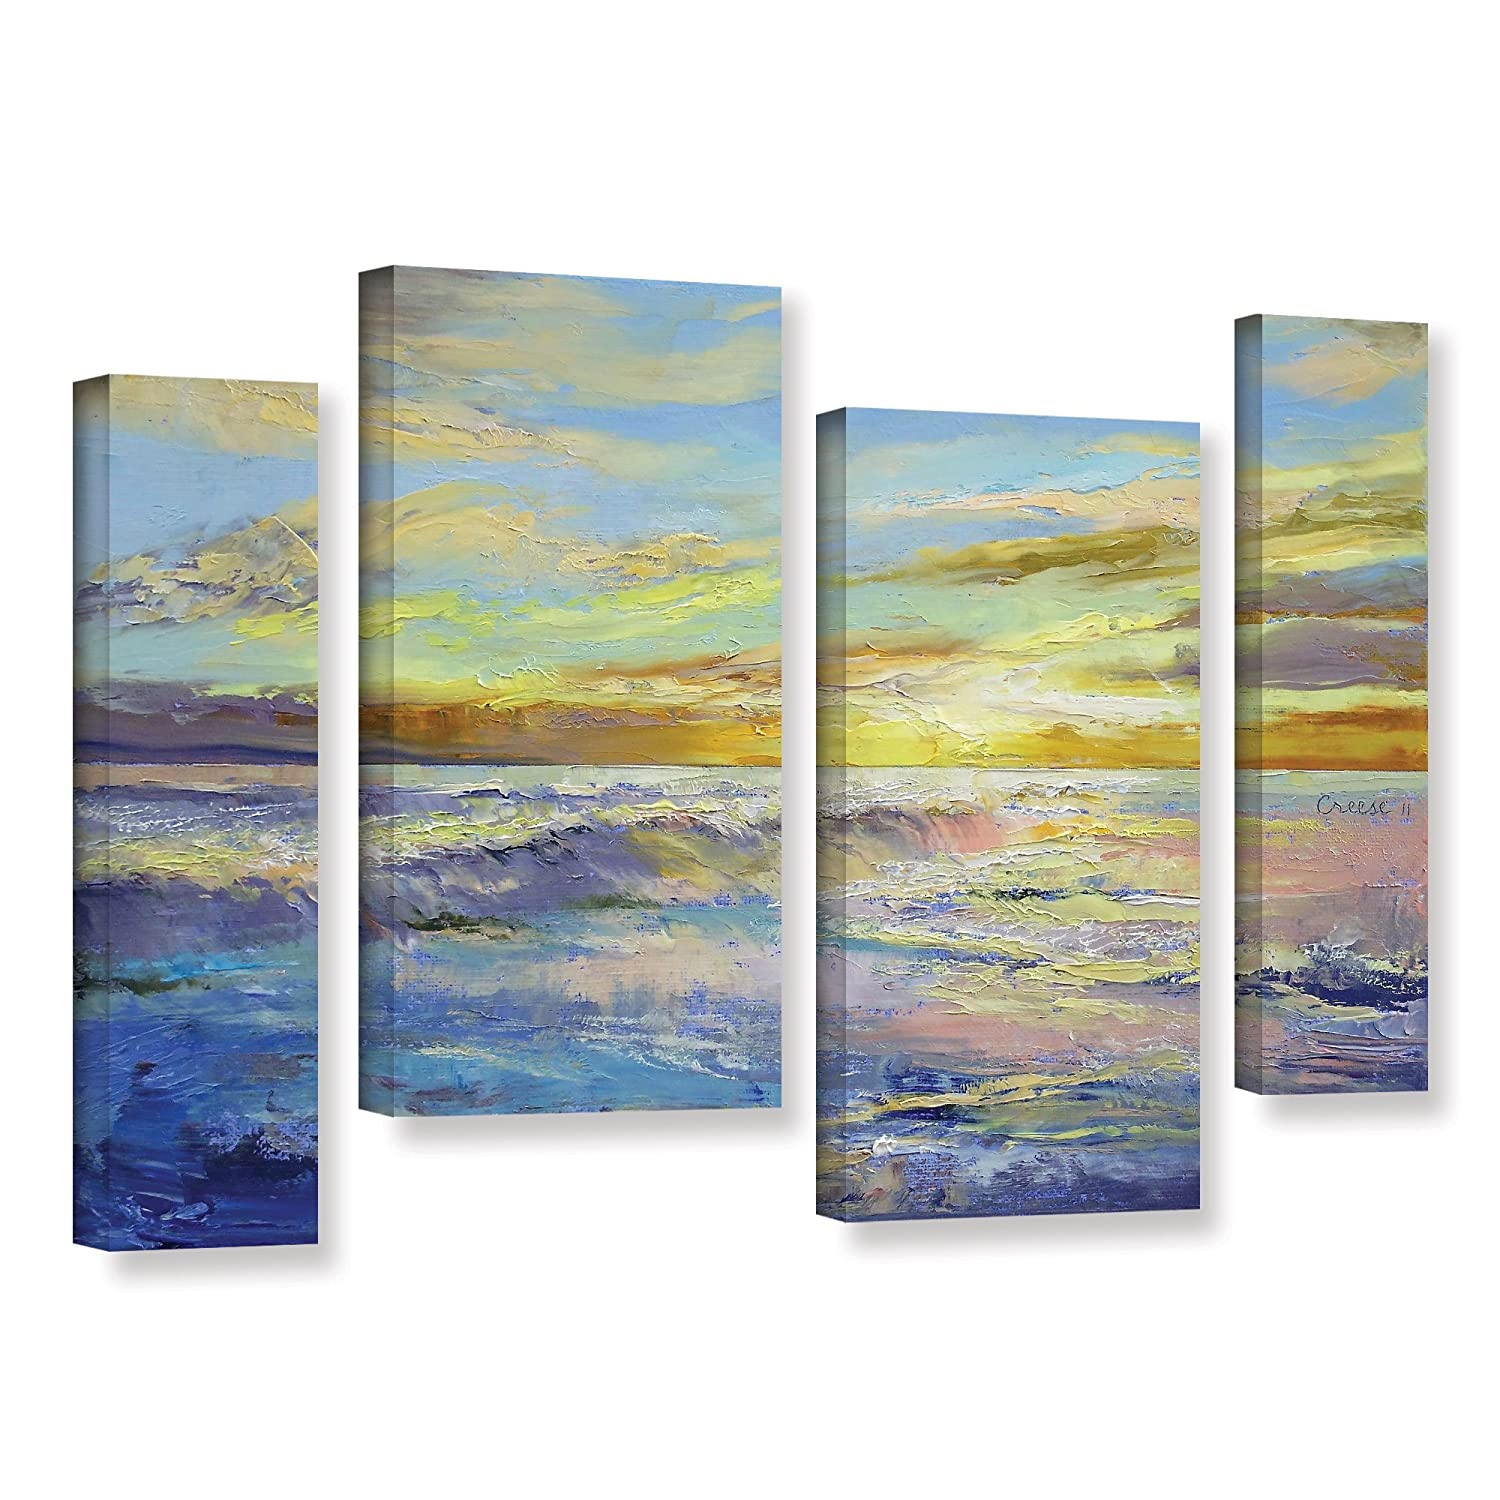 ArtWall Marina Petros Autumn Mist 4 Piece Gallery-Wrapped Canvas Staggered Set 36 by 54